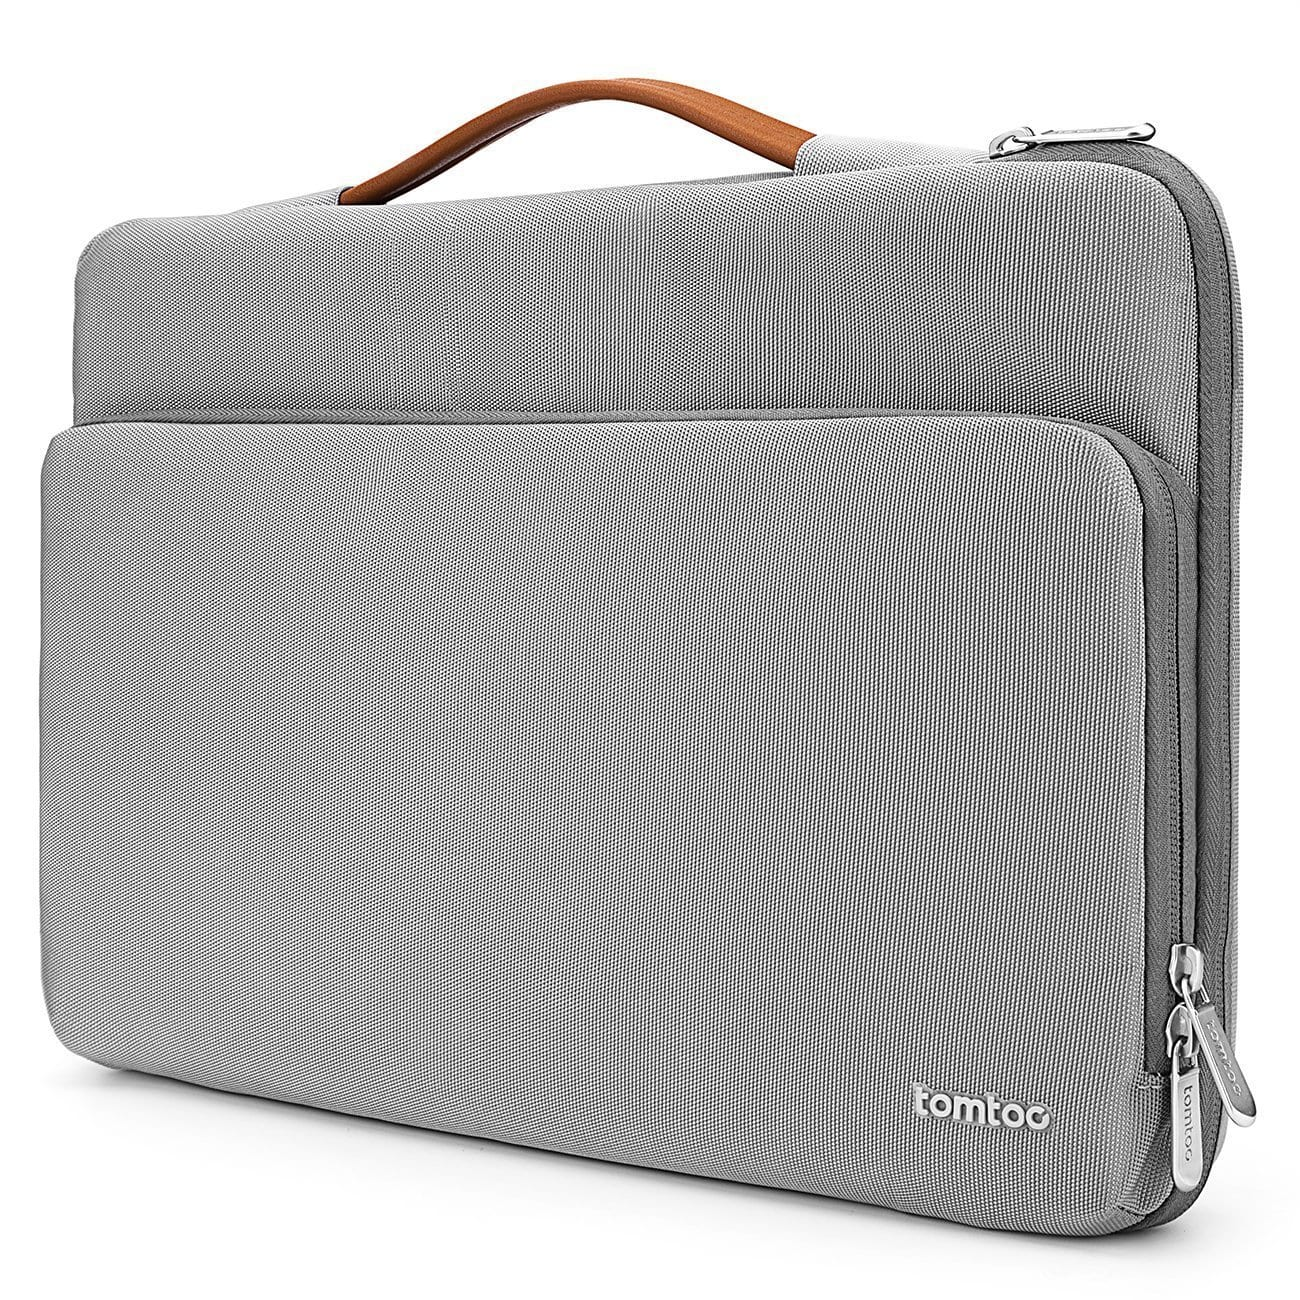 Top 8 Best Protective Laptop Sleeve Cases Reviews In 2019